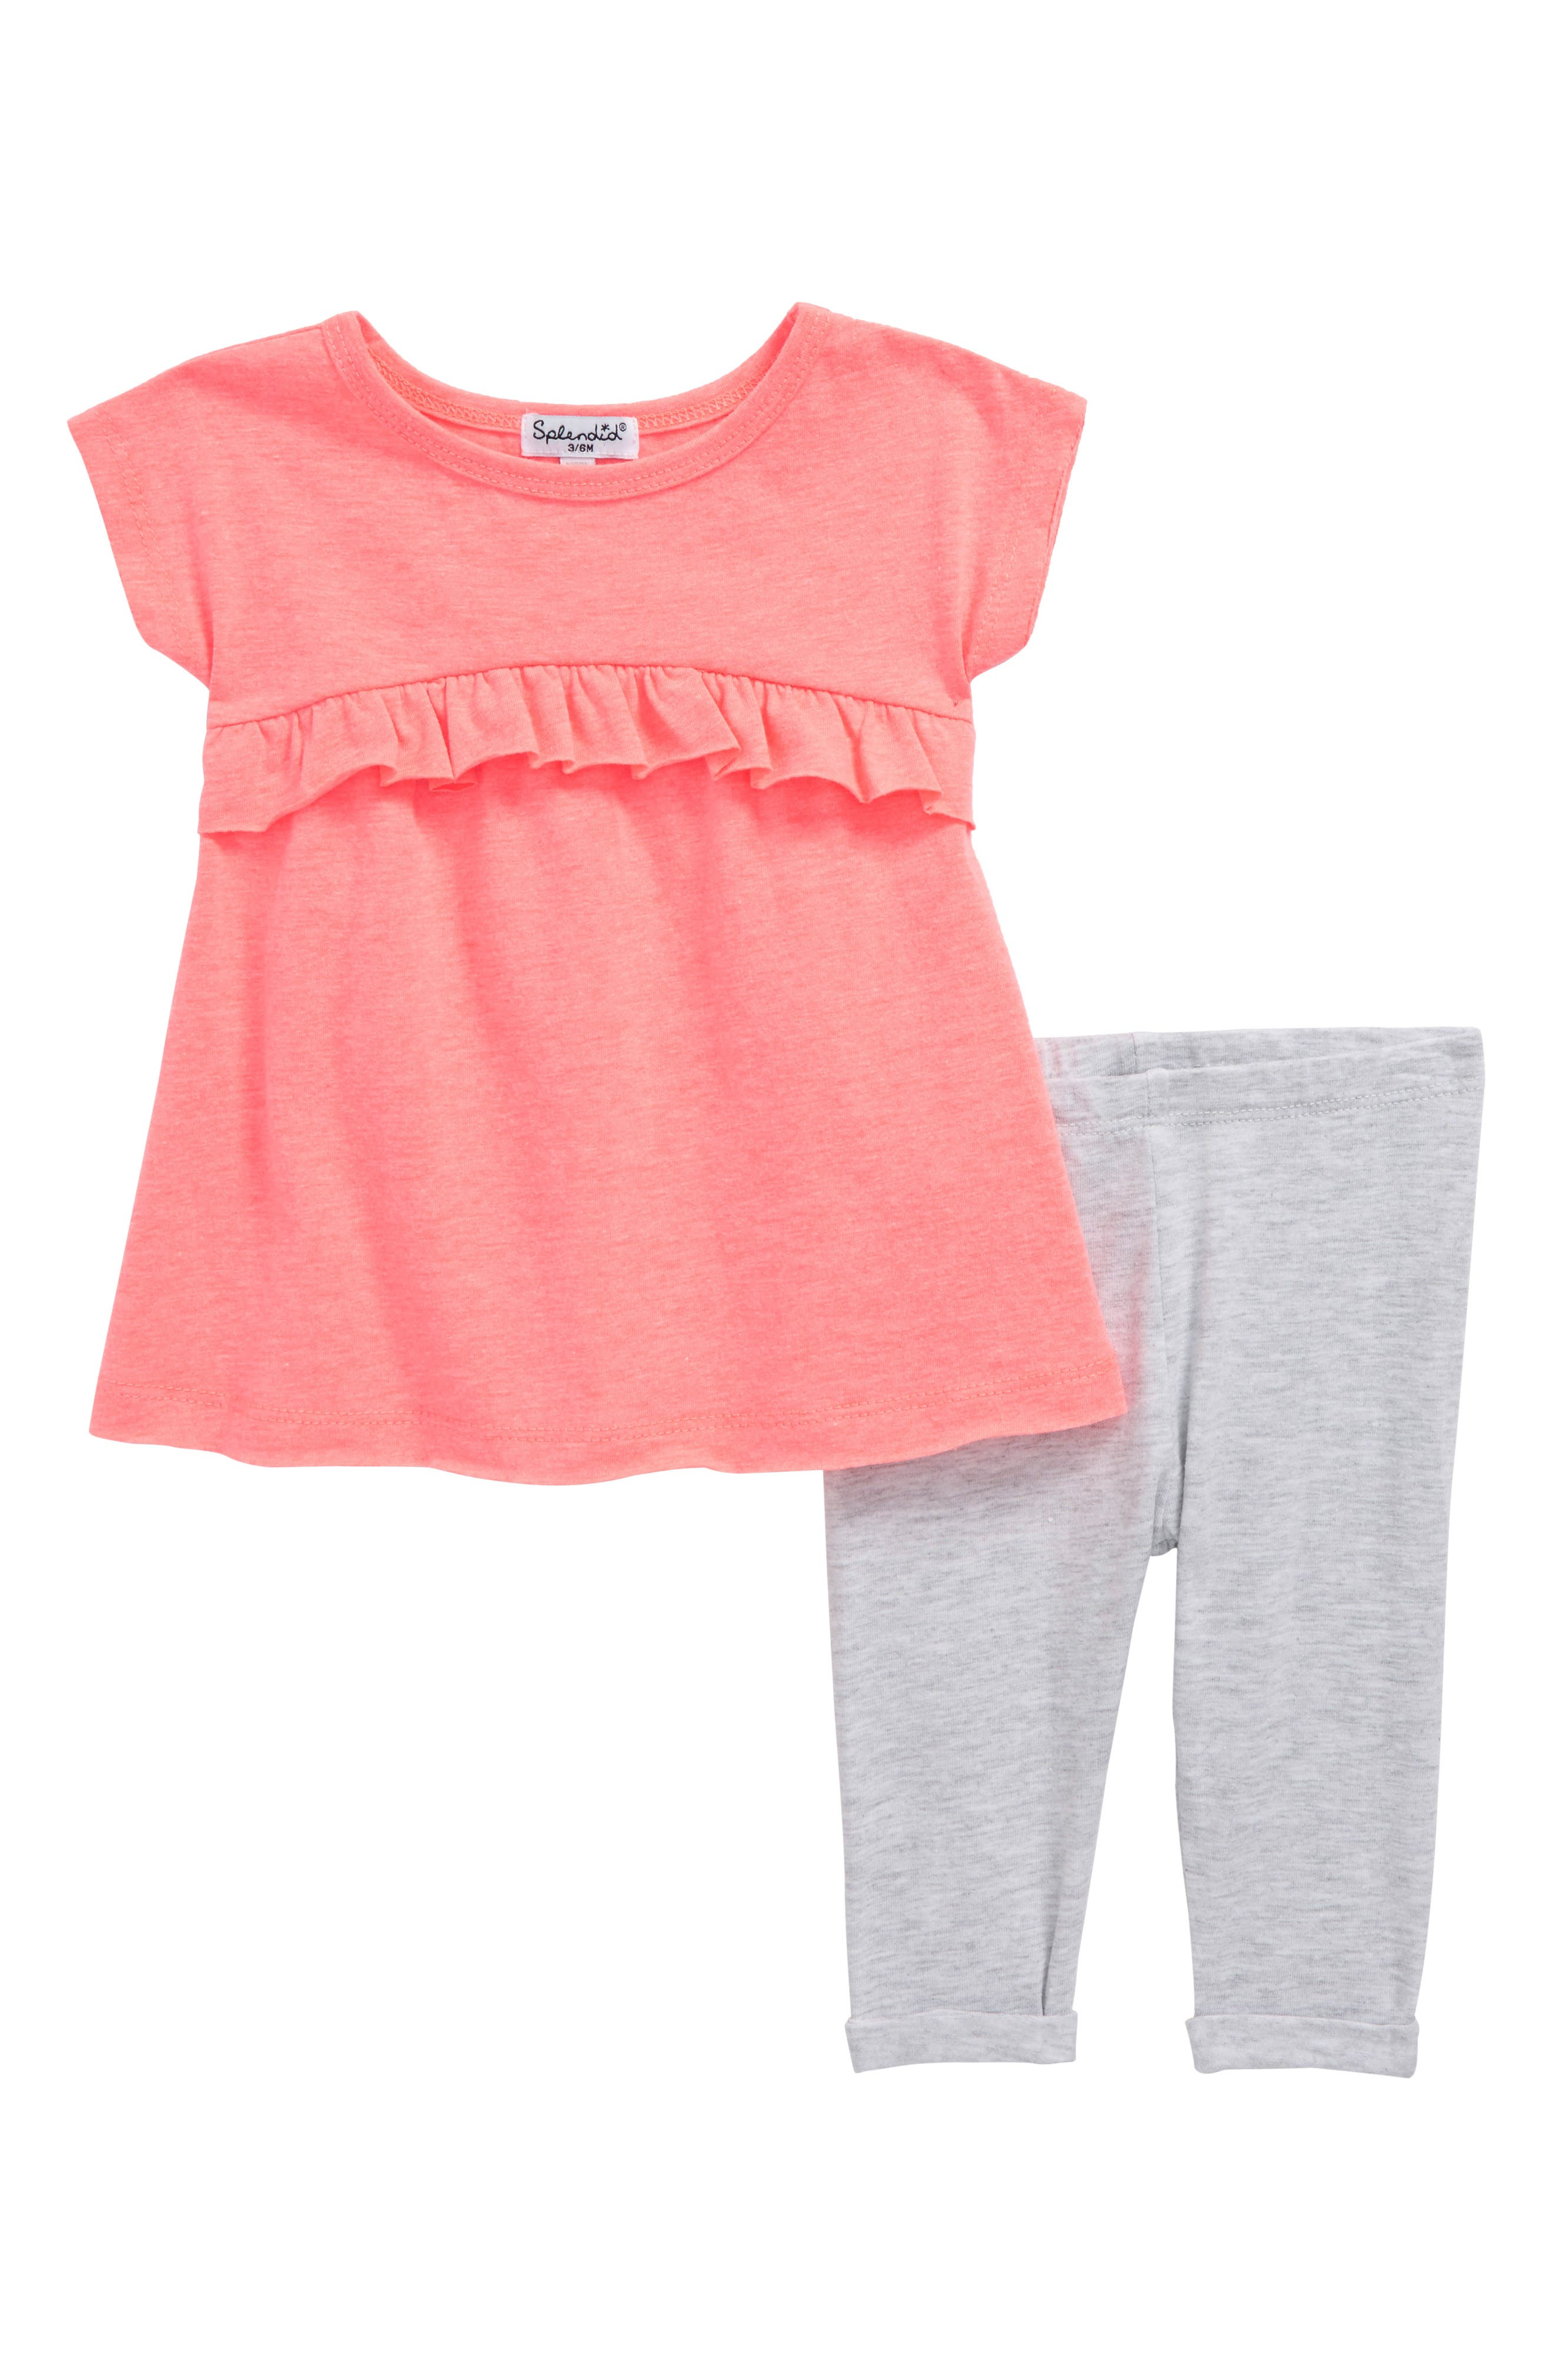 Alternate Image 1 Selected - Splendid Ruffle Swing Top & Leggings Set (Baby Girls)